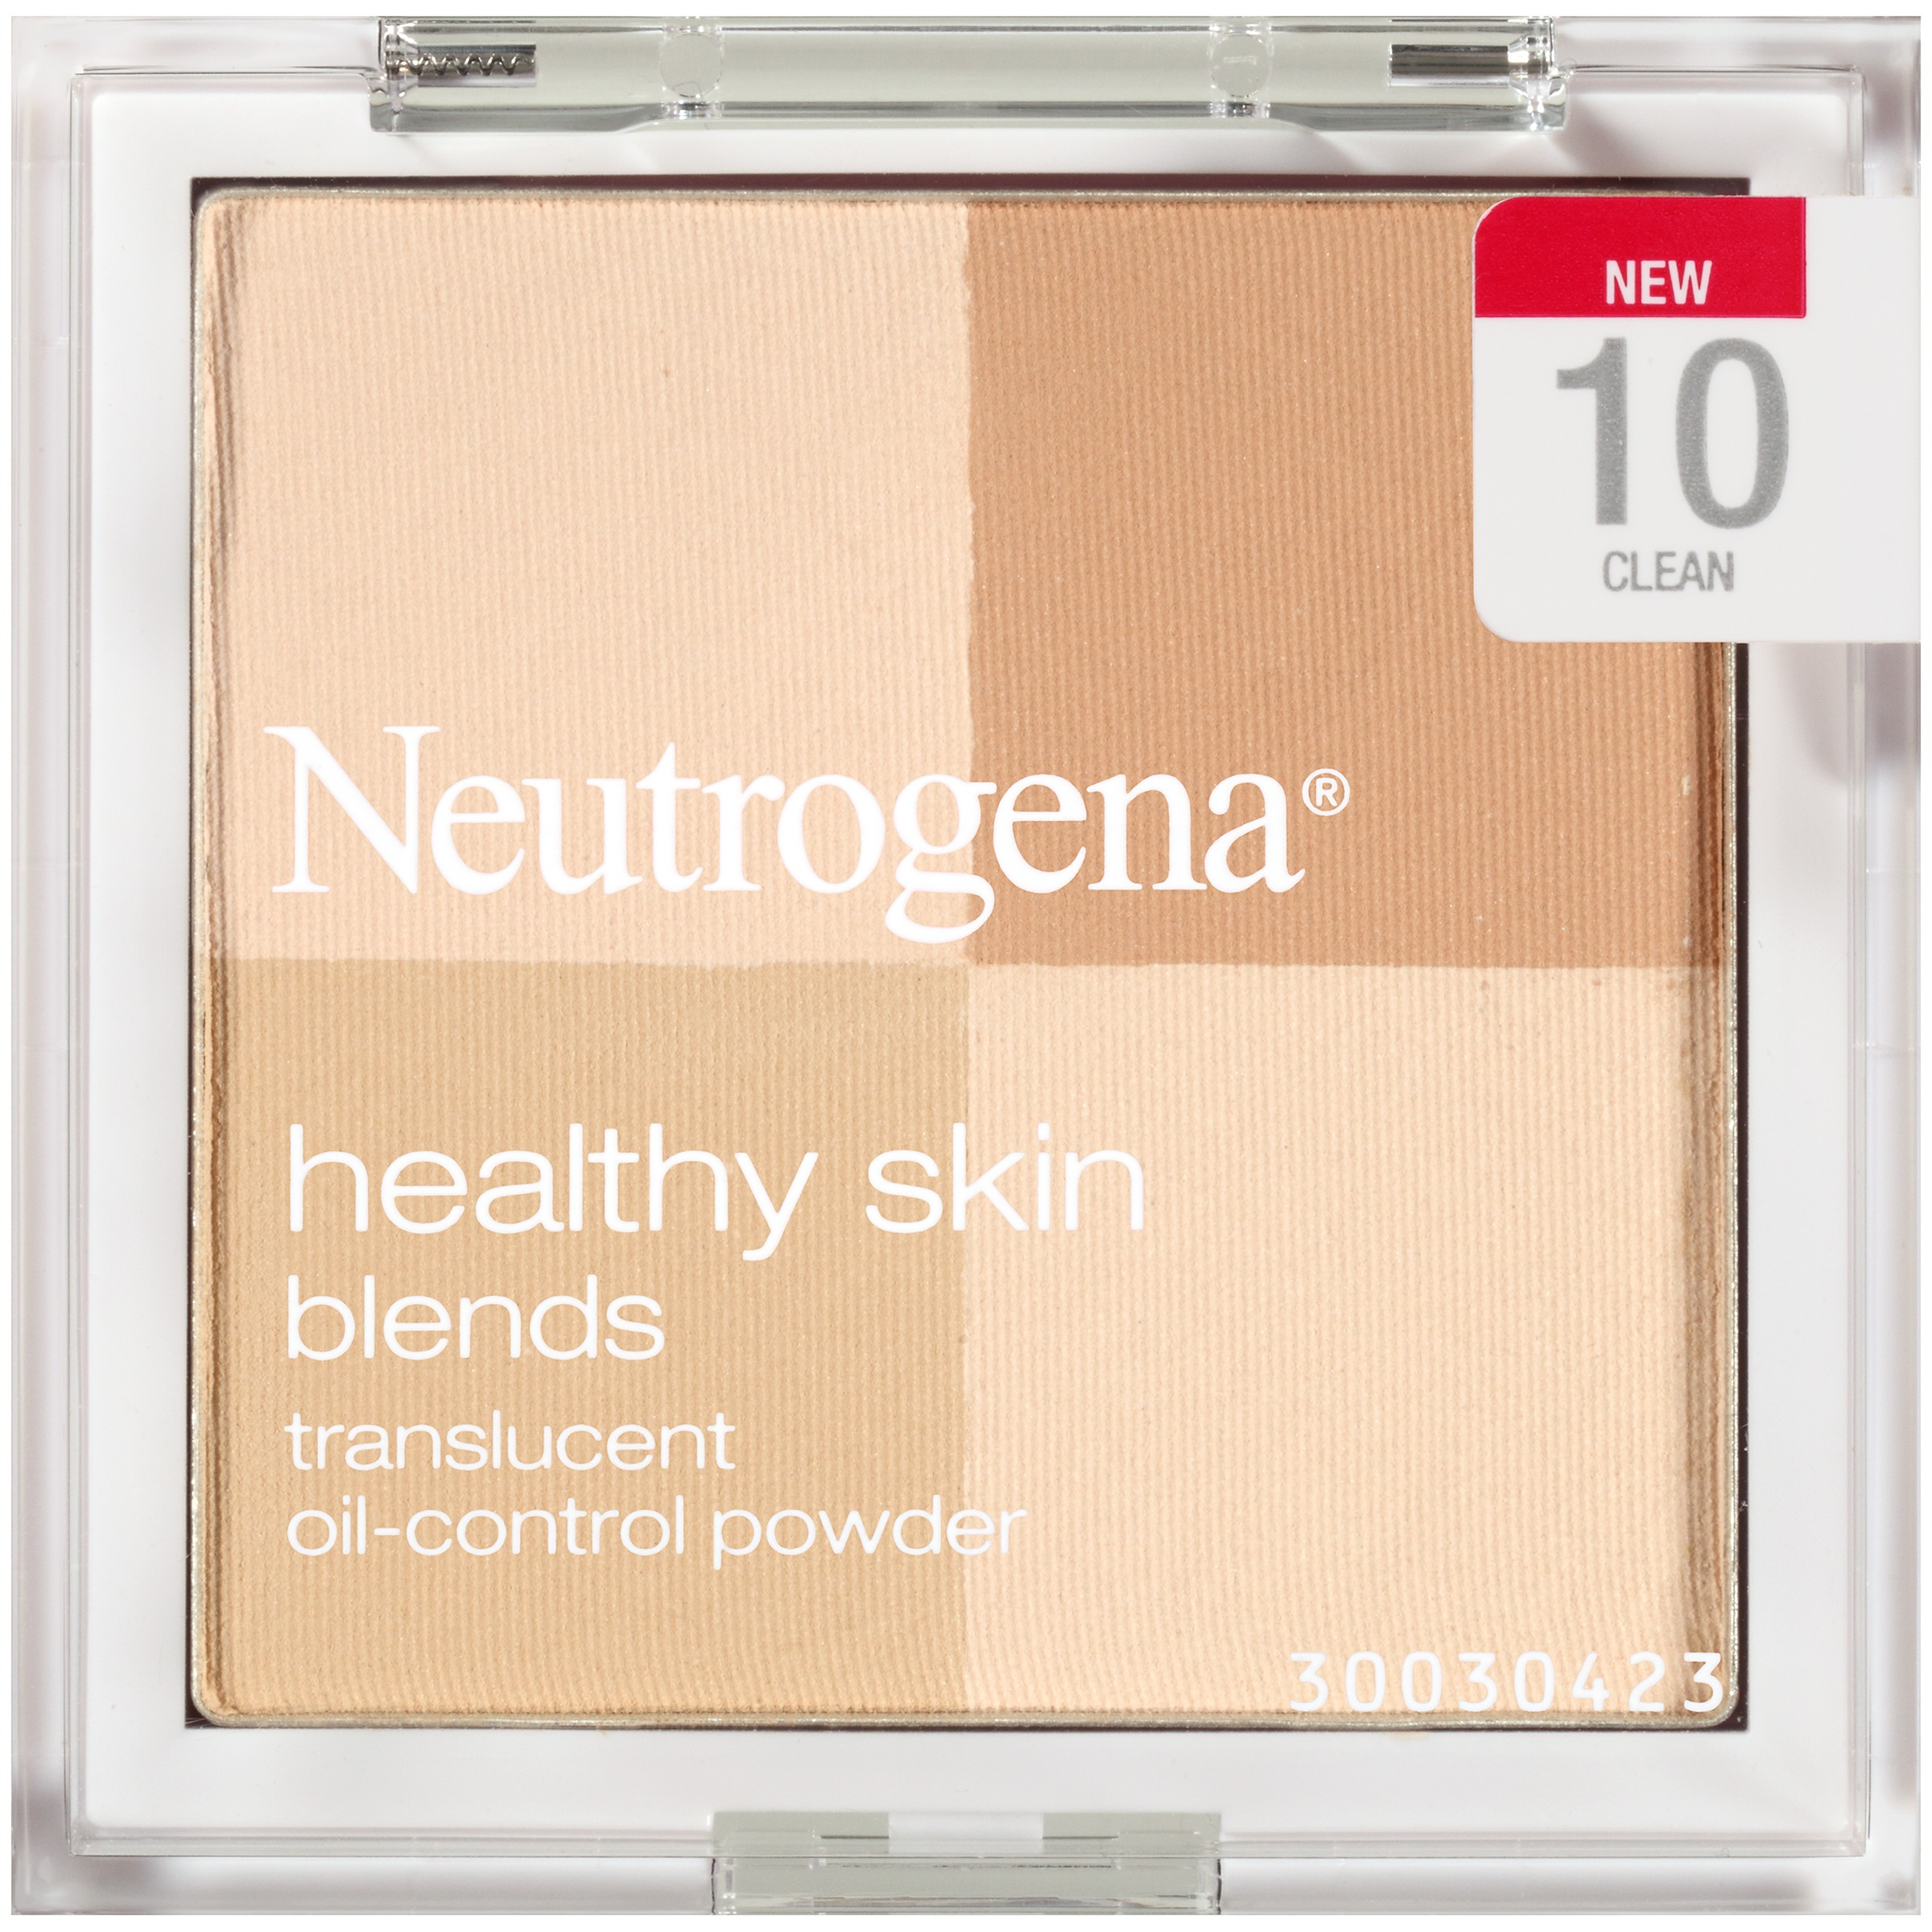 Neutrogena Healthy Skin Blends, 10 Clean, .3 Oz